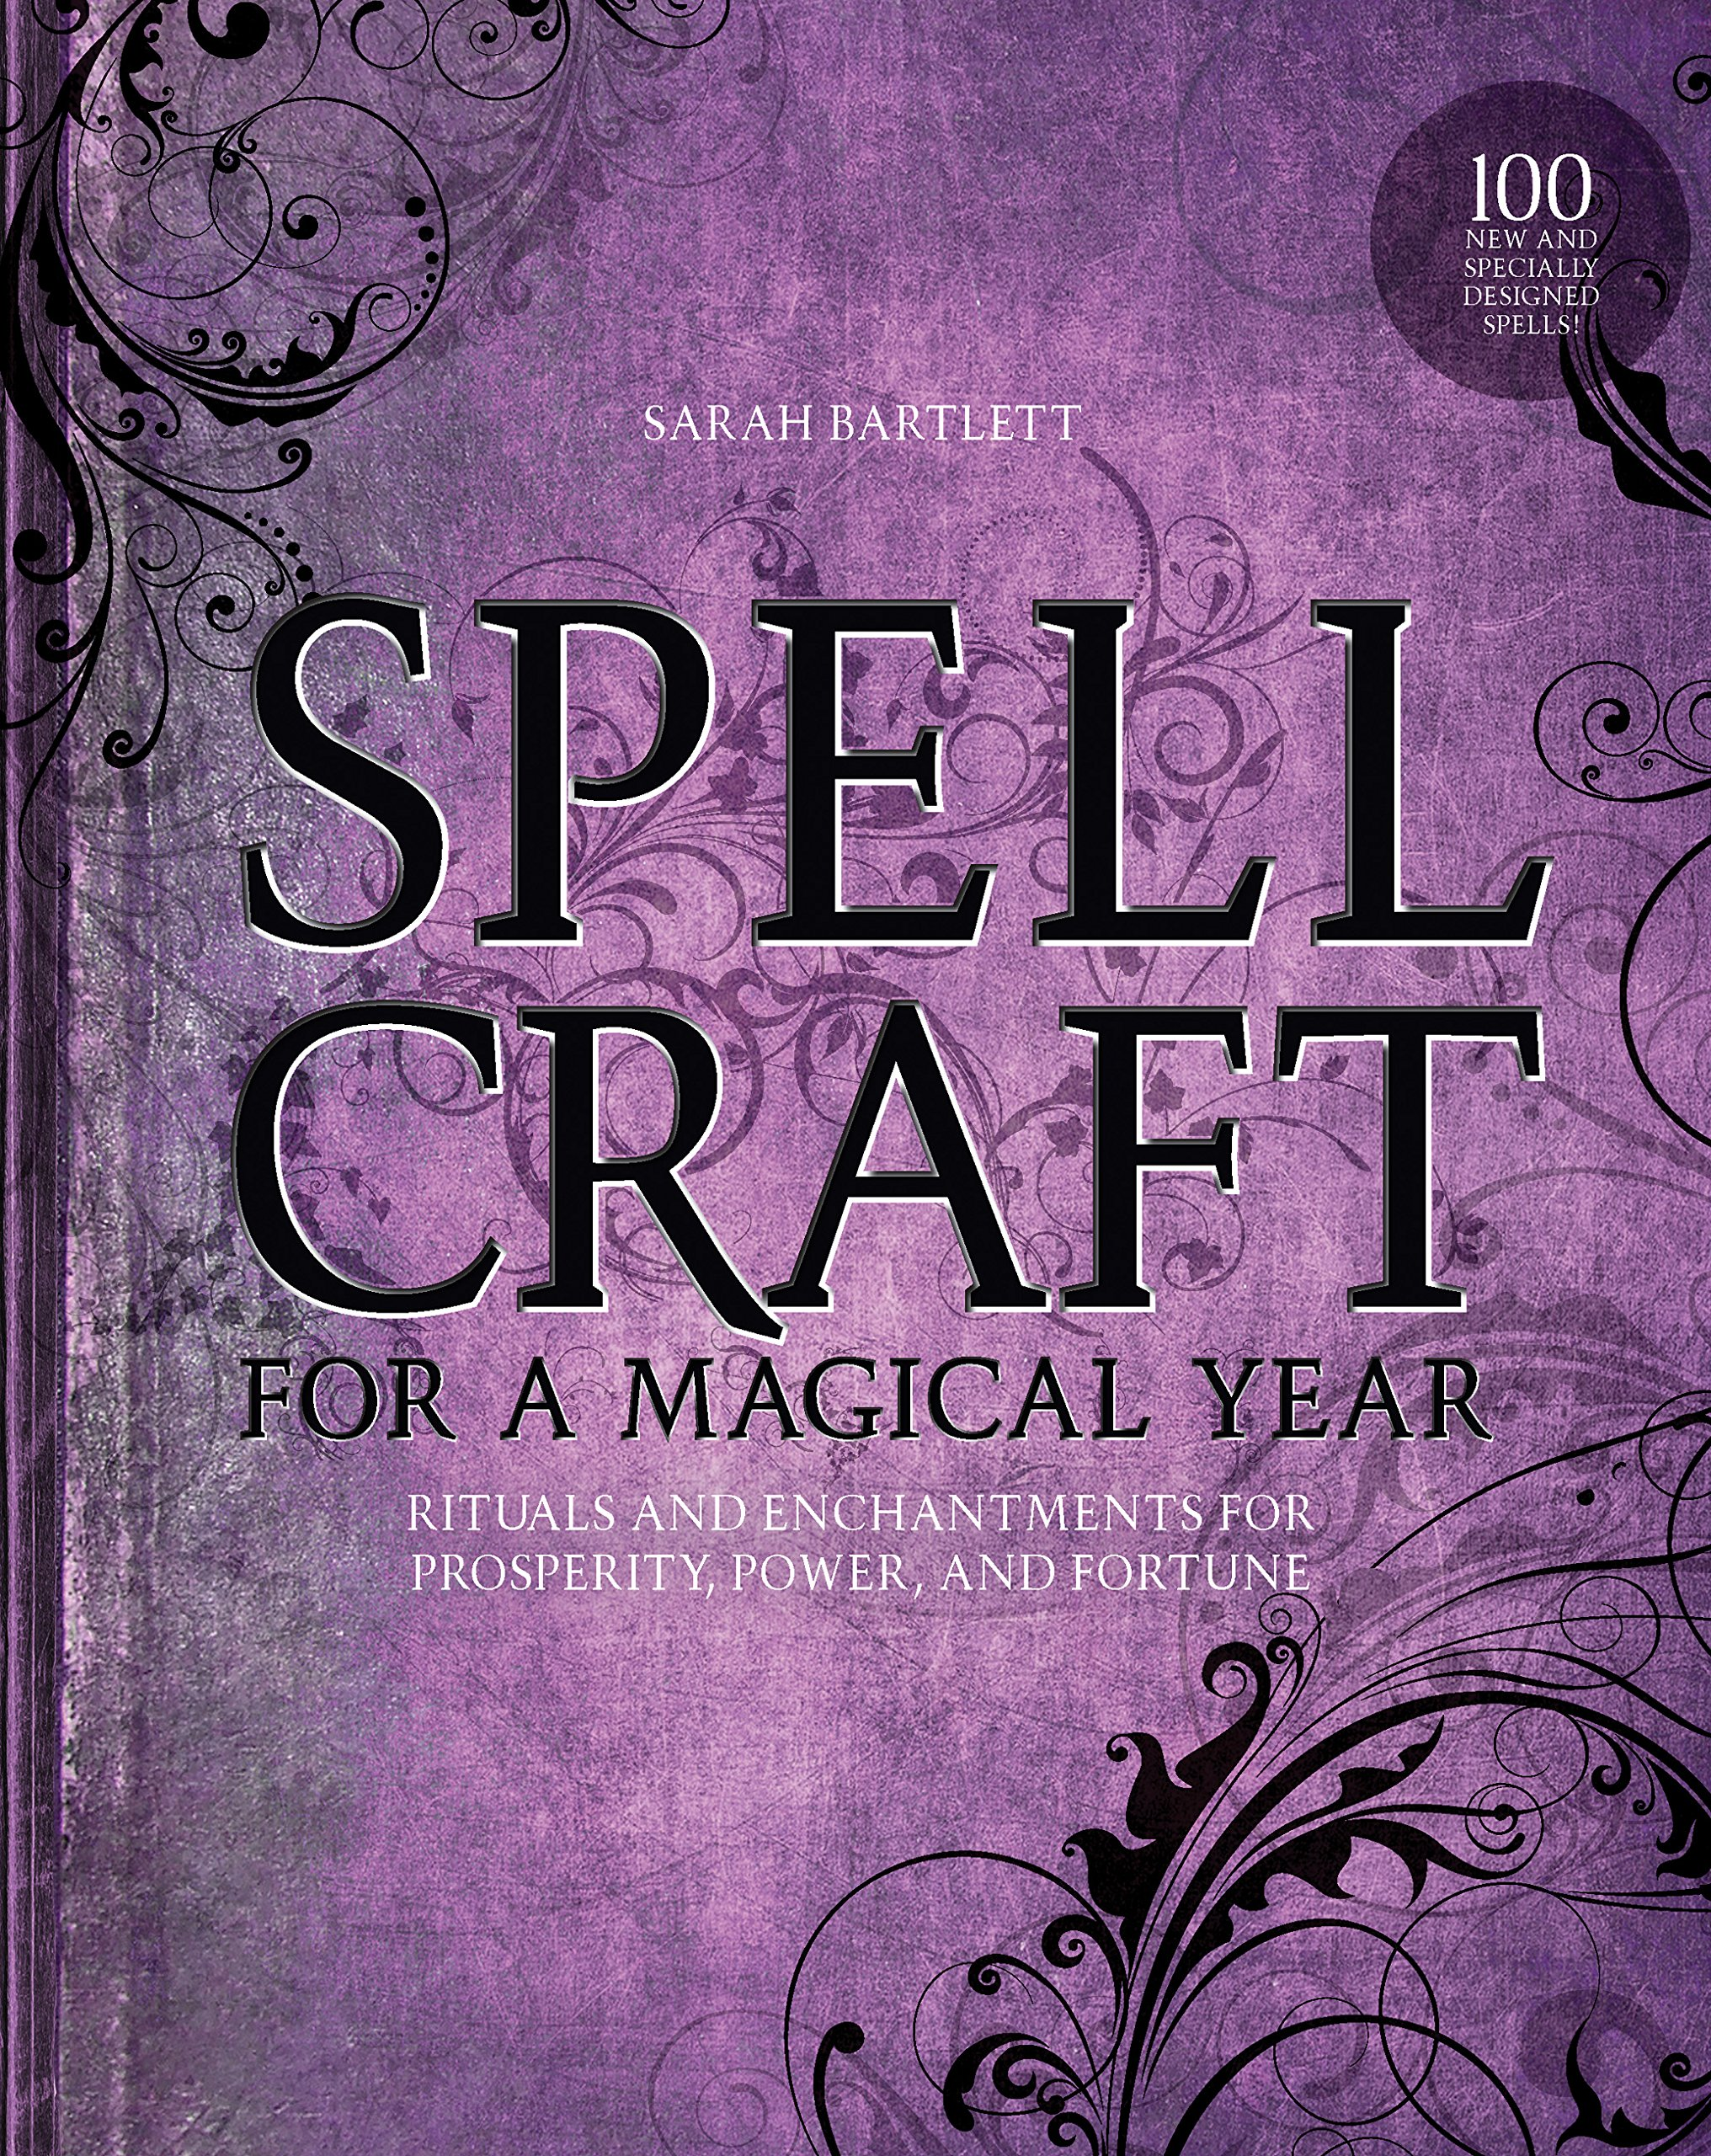 Spellcraft for a Magical Year: Rituals and Enchantments for Prosperity,  Power, and Fortune: Sarah Bartlett: 9781592336807: Amazon.com: Books